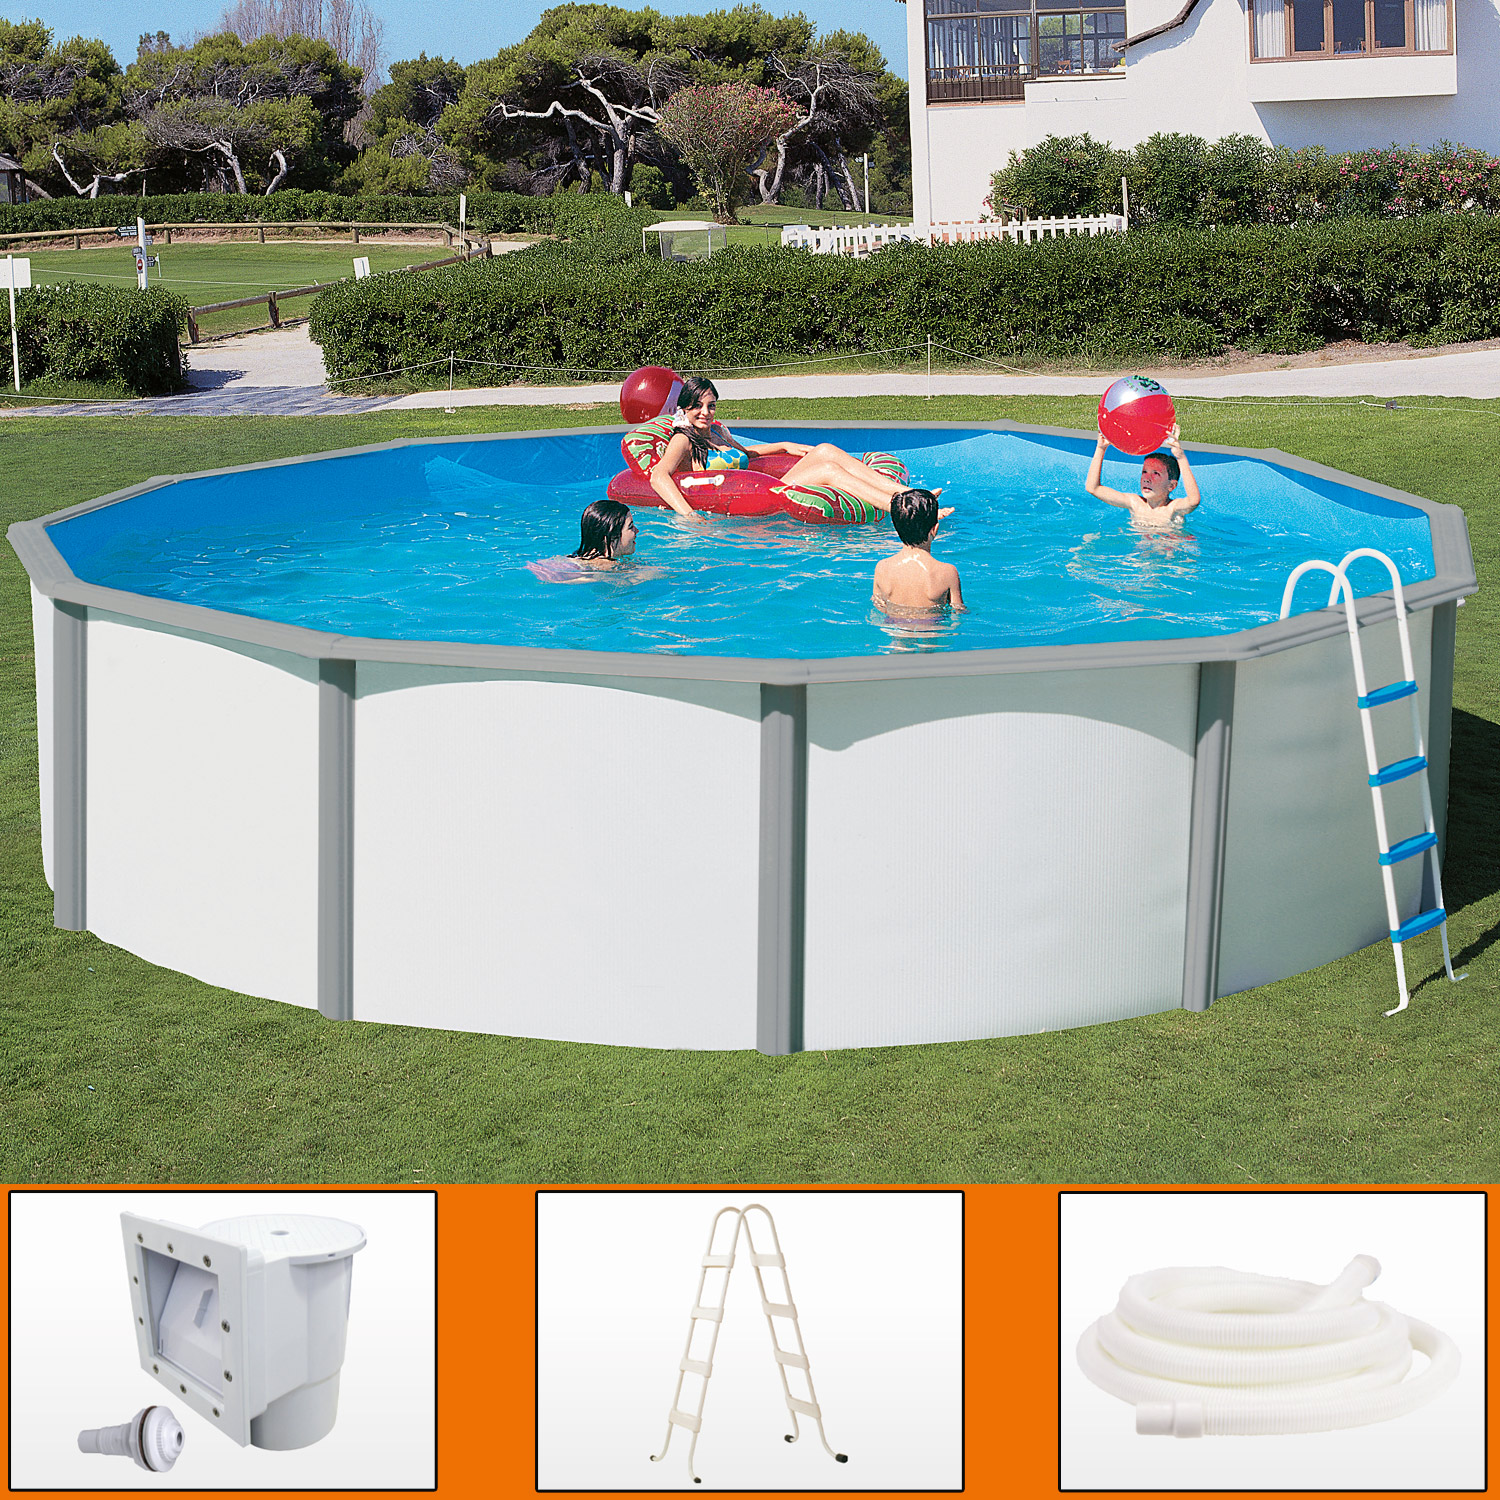 Swimming pool stahlwand ovalbecken swimmingpool 5 50 x 3 for Stahlwandpool bei obi